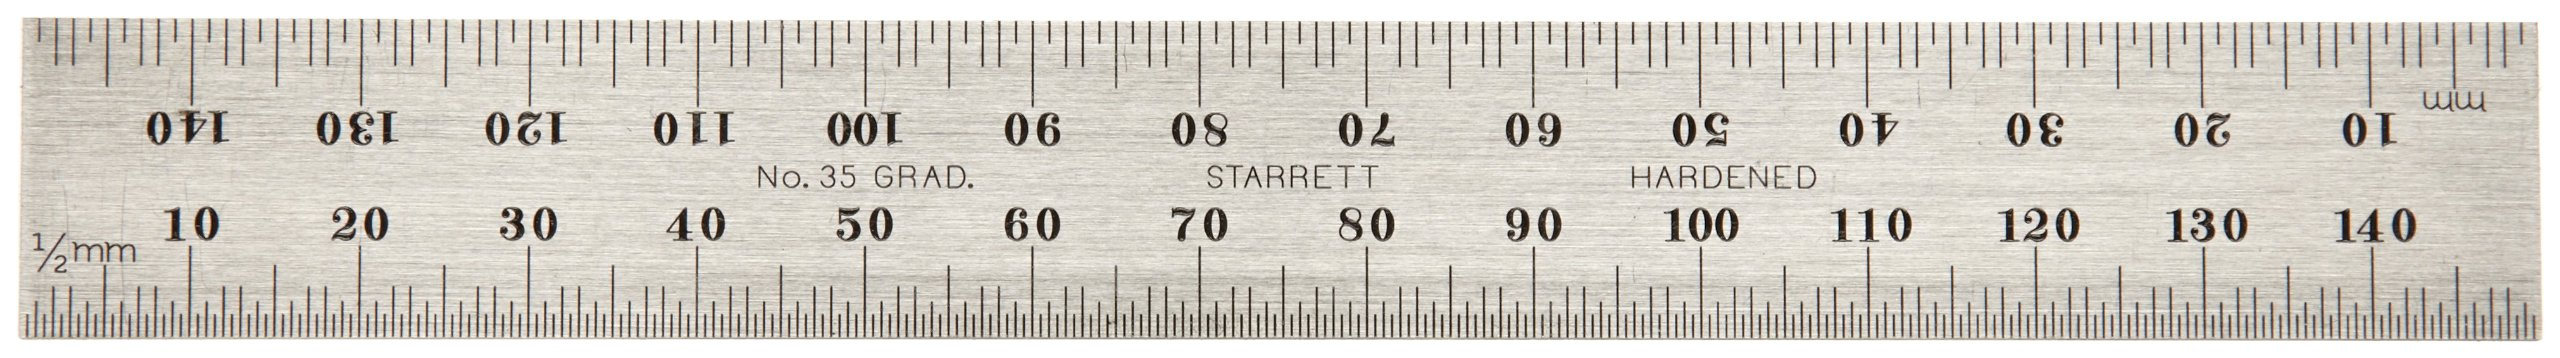 Starrett B150-35 Millimeter Blade For Combination Squares, Sets And Bevel Protractors, Regular Finish, 19mm Width, 2mm Thickness, 150mm Size